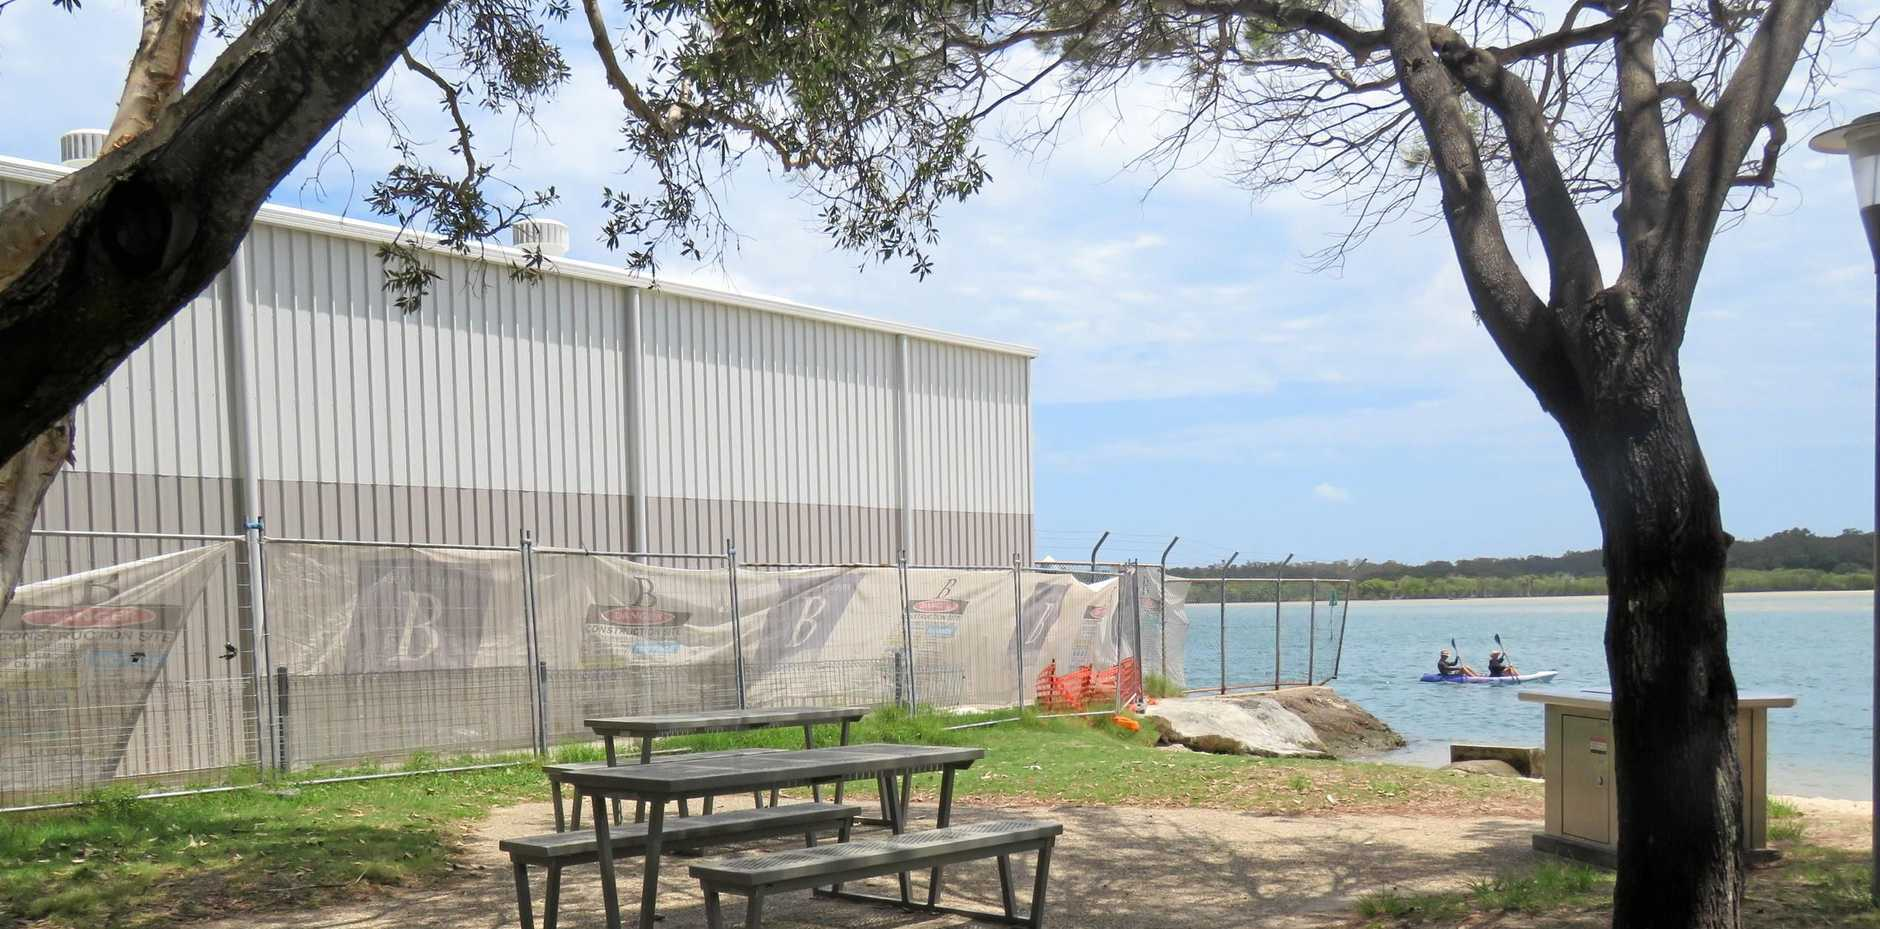 OVERPOWERING: The shed locals say is over-the-top for Munna Pt